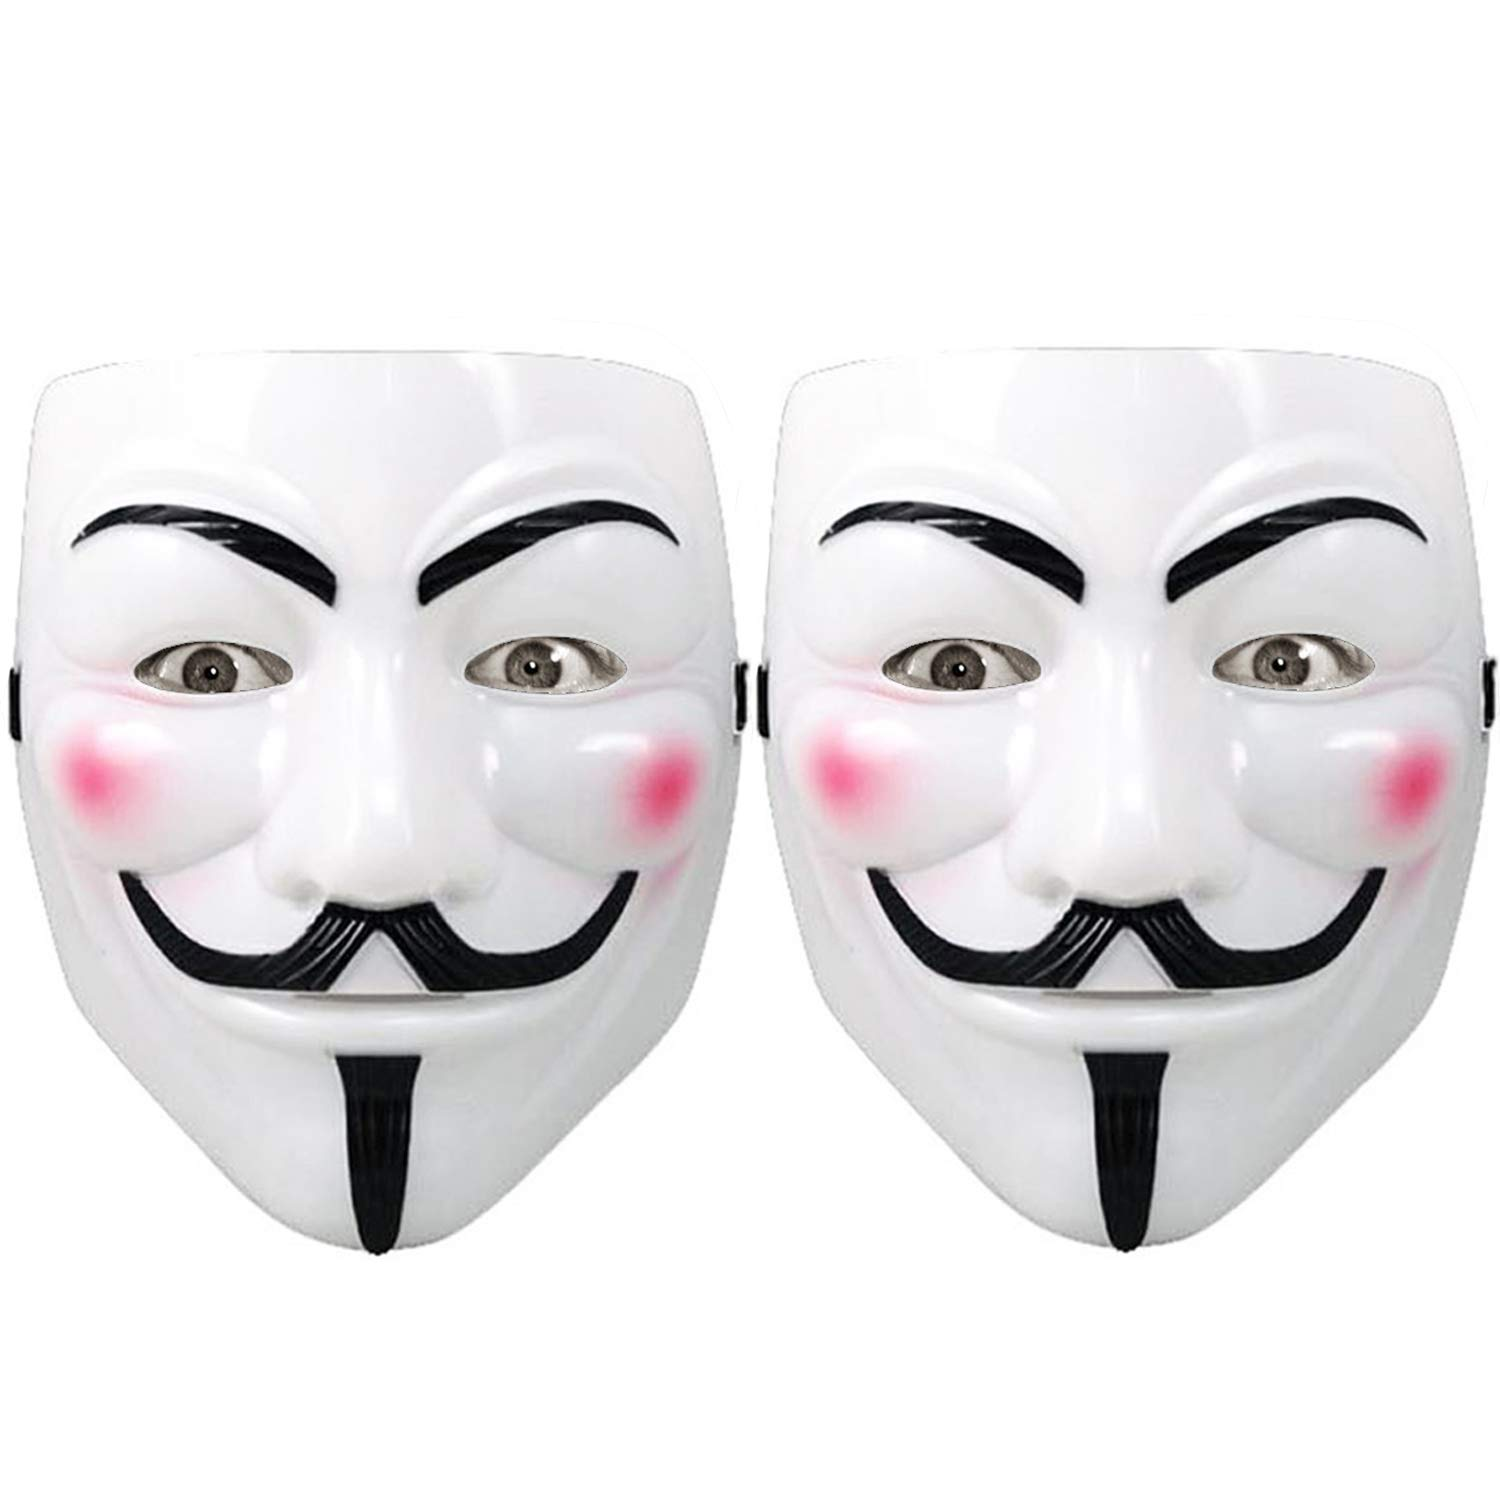 Hacker Mask for Costume Kids - 2 Pack White Anonymous Face Masks for Halloween V for Vendetta DIY Toy Head Mask